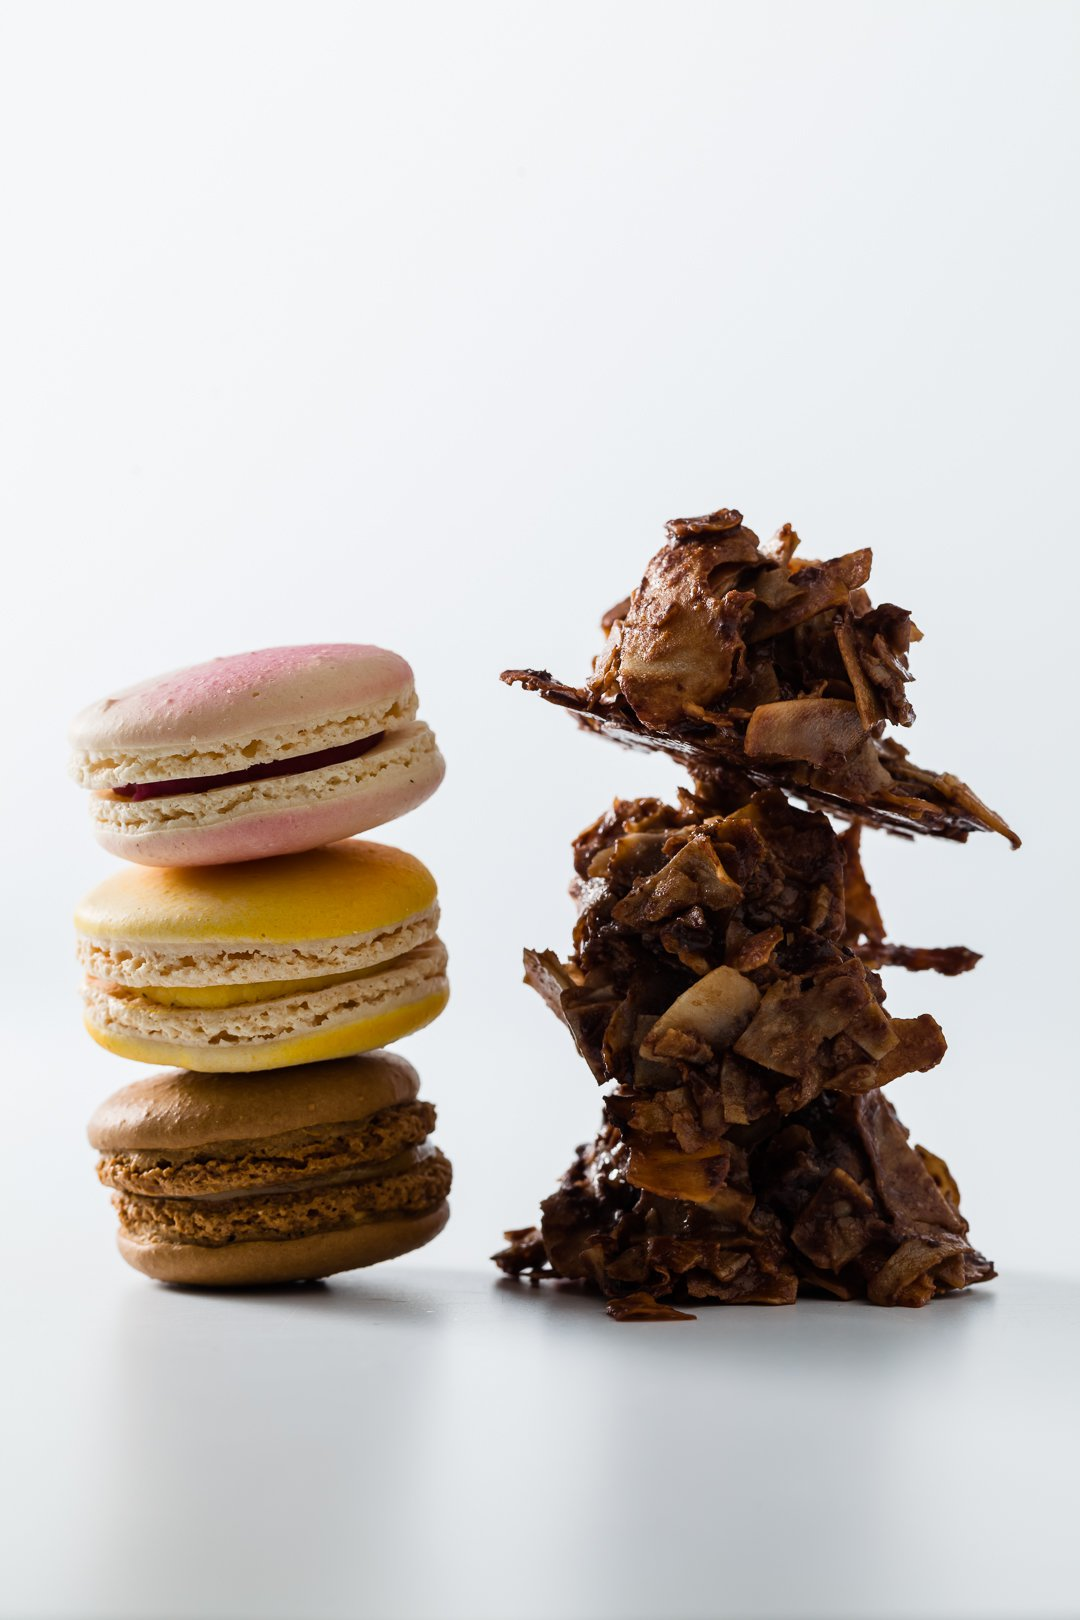 A stack of macaroons next to a stack of macaroons